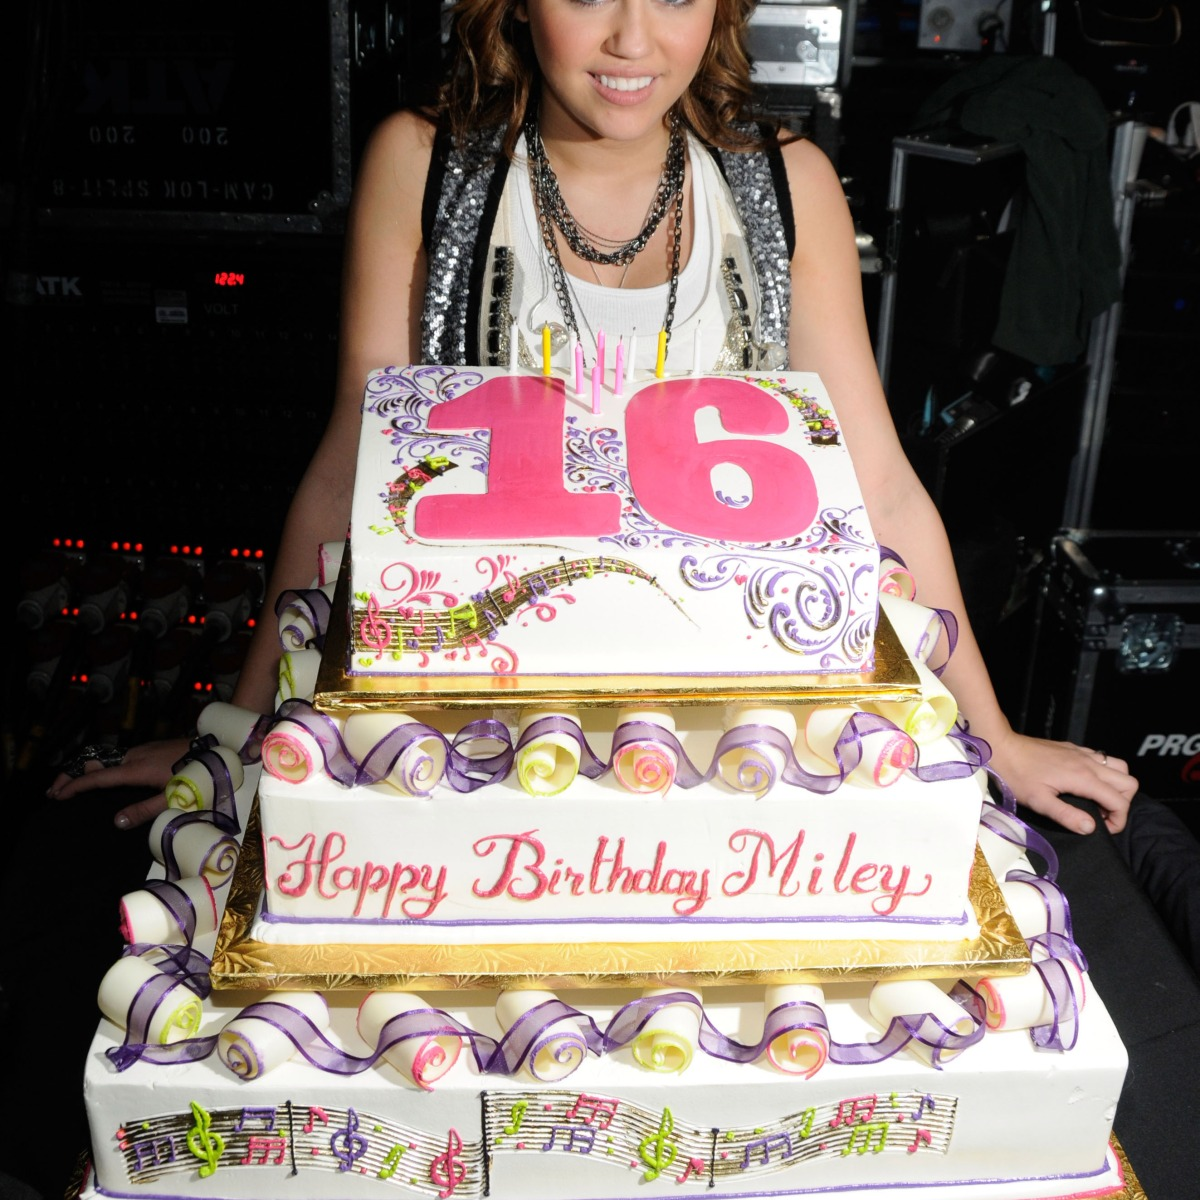 12 Insane Cakes Your Favorite Stars Had For Their 16th Birthdays